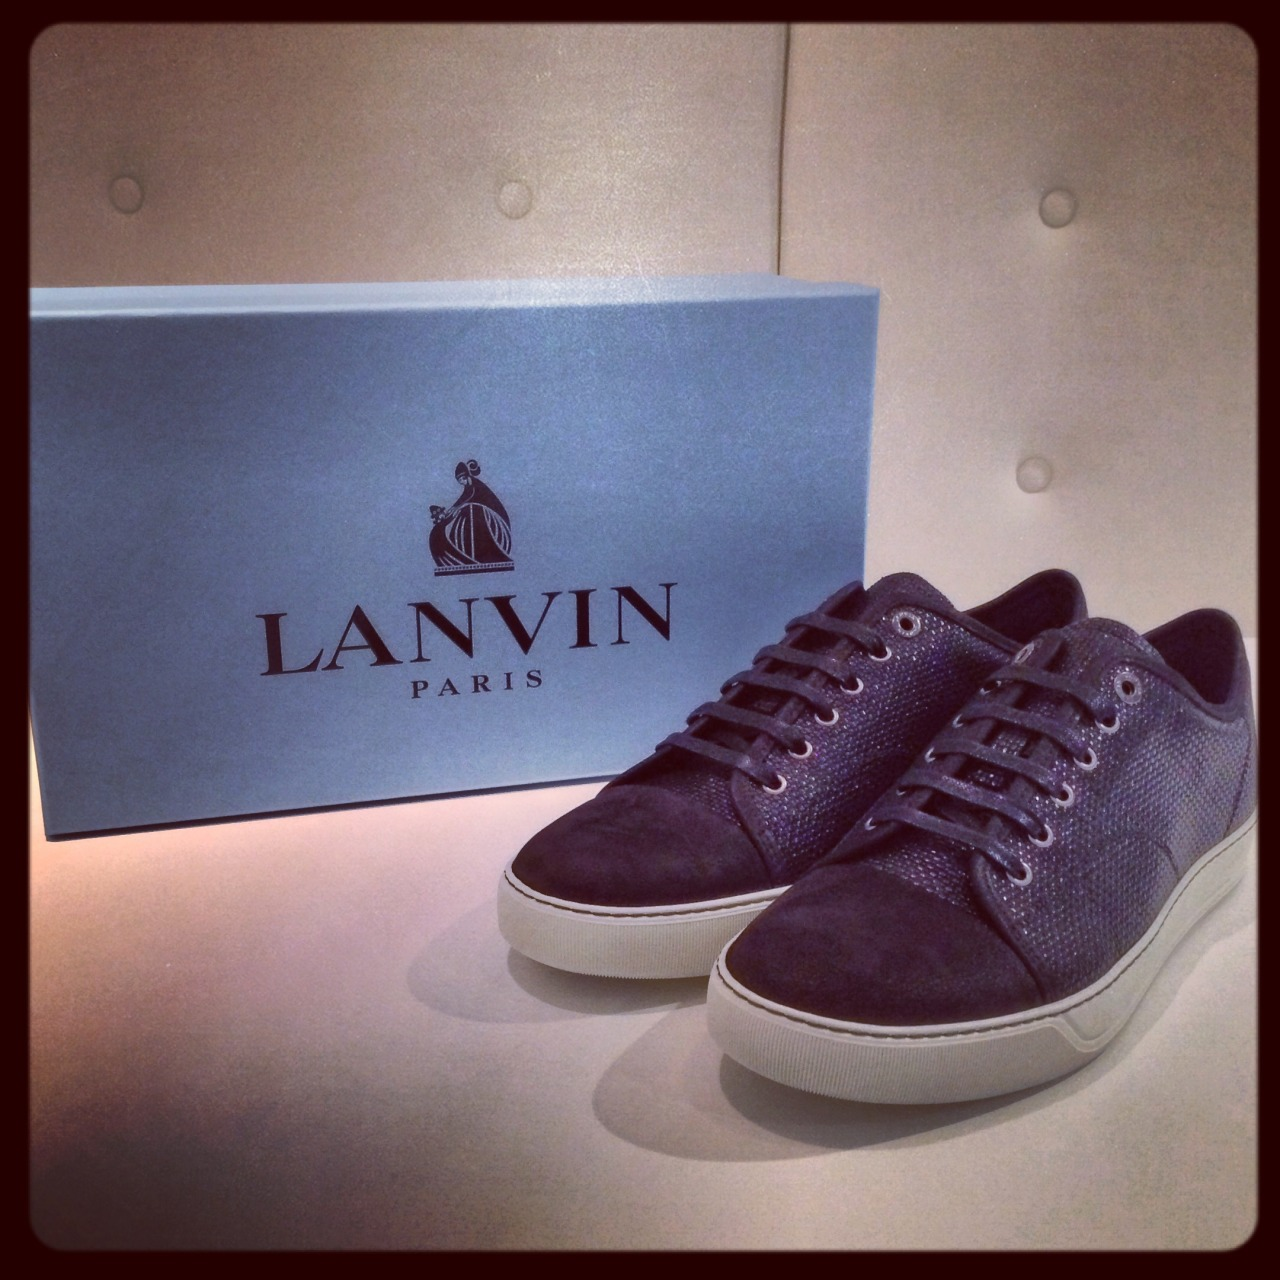 Lanvin continues to impress with this pair of black textured low-tops. Read & Shop> http://bit.ly/ViH7qi